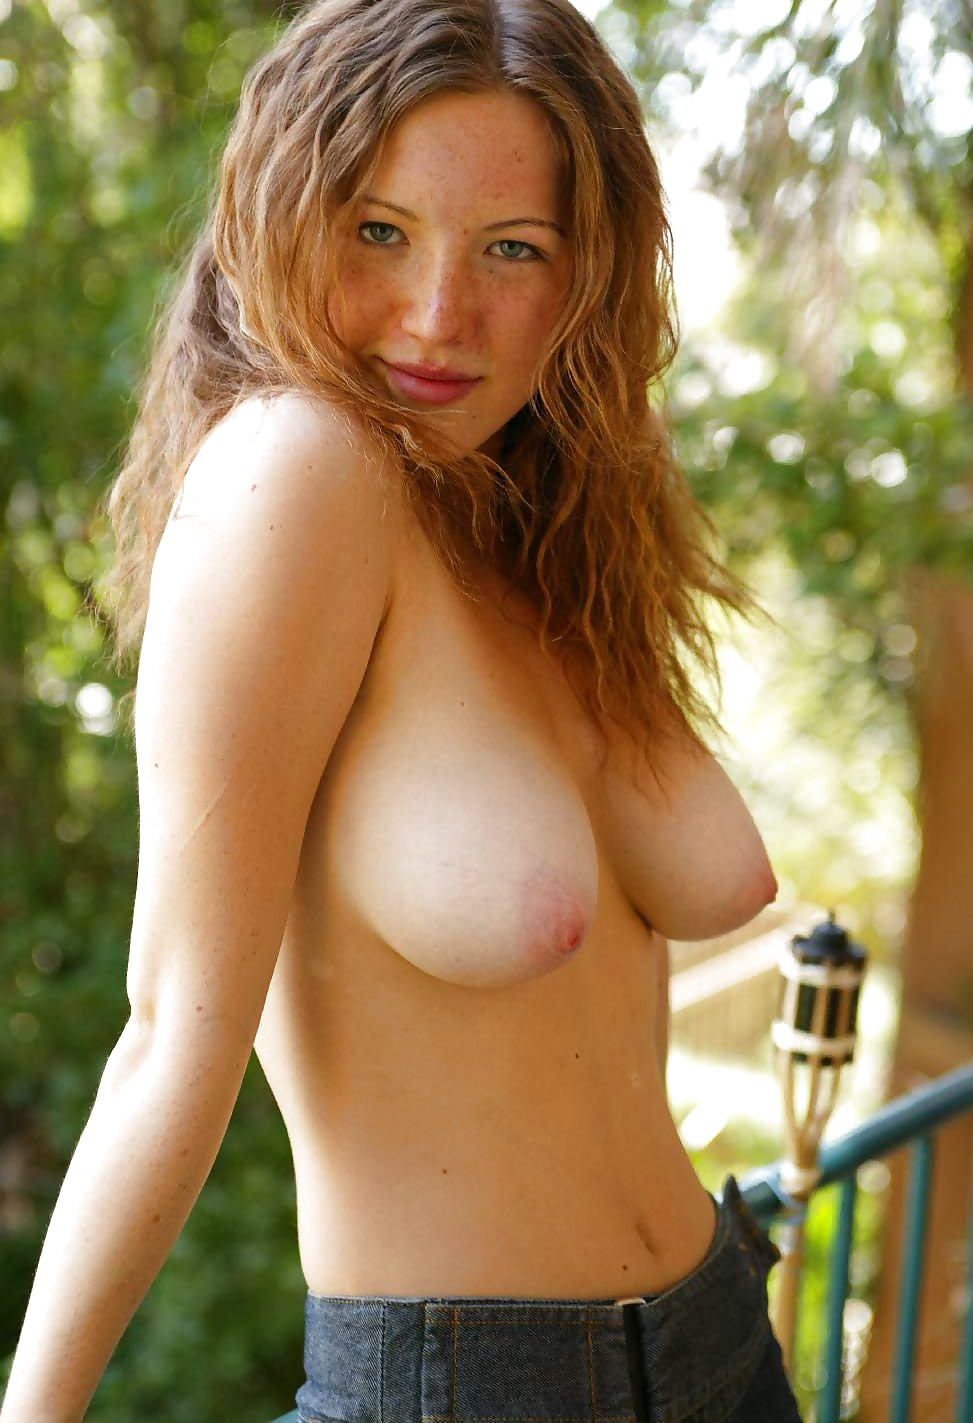 boobs-pics-banana-tits-shape-pictures-xxx-girls